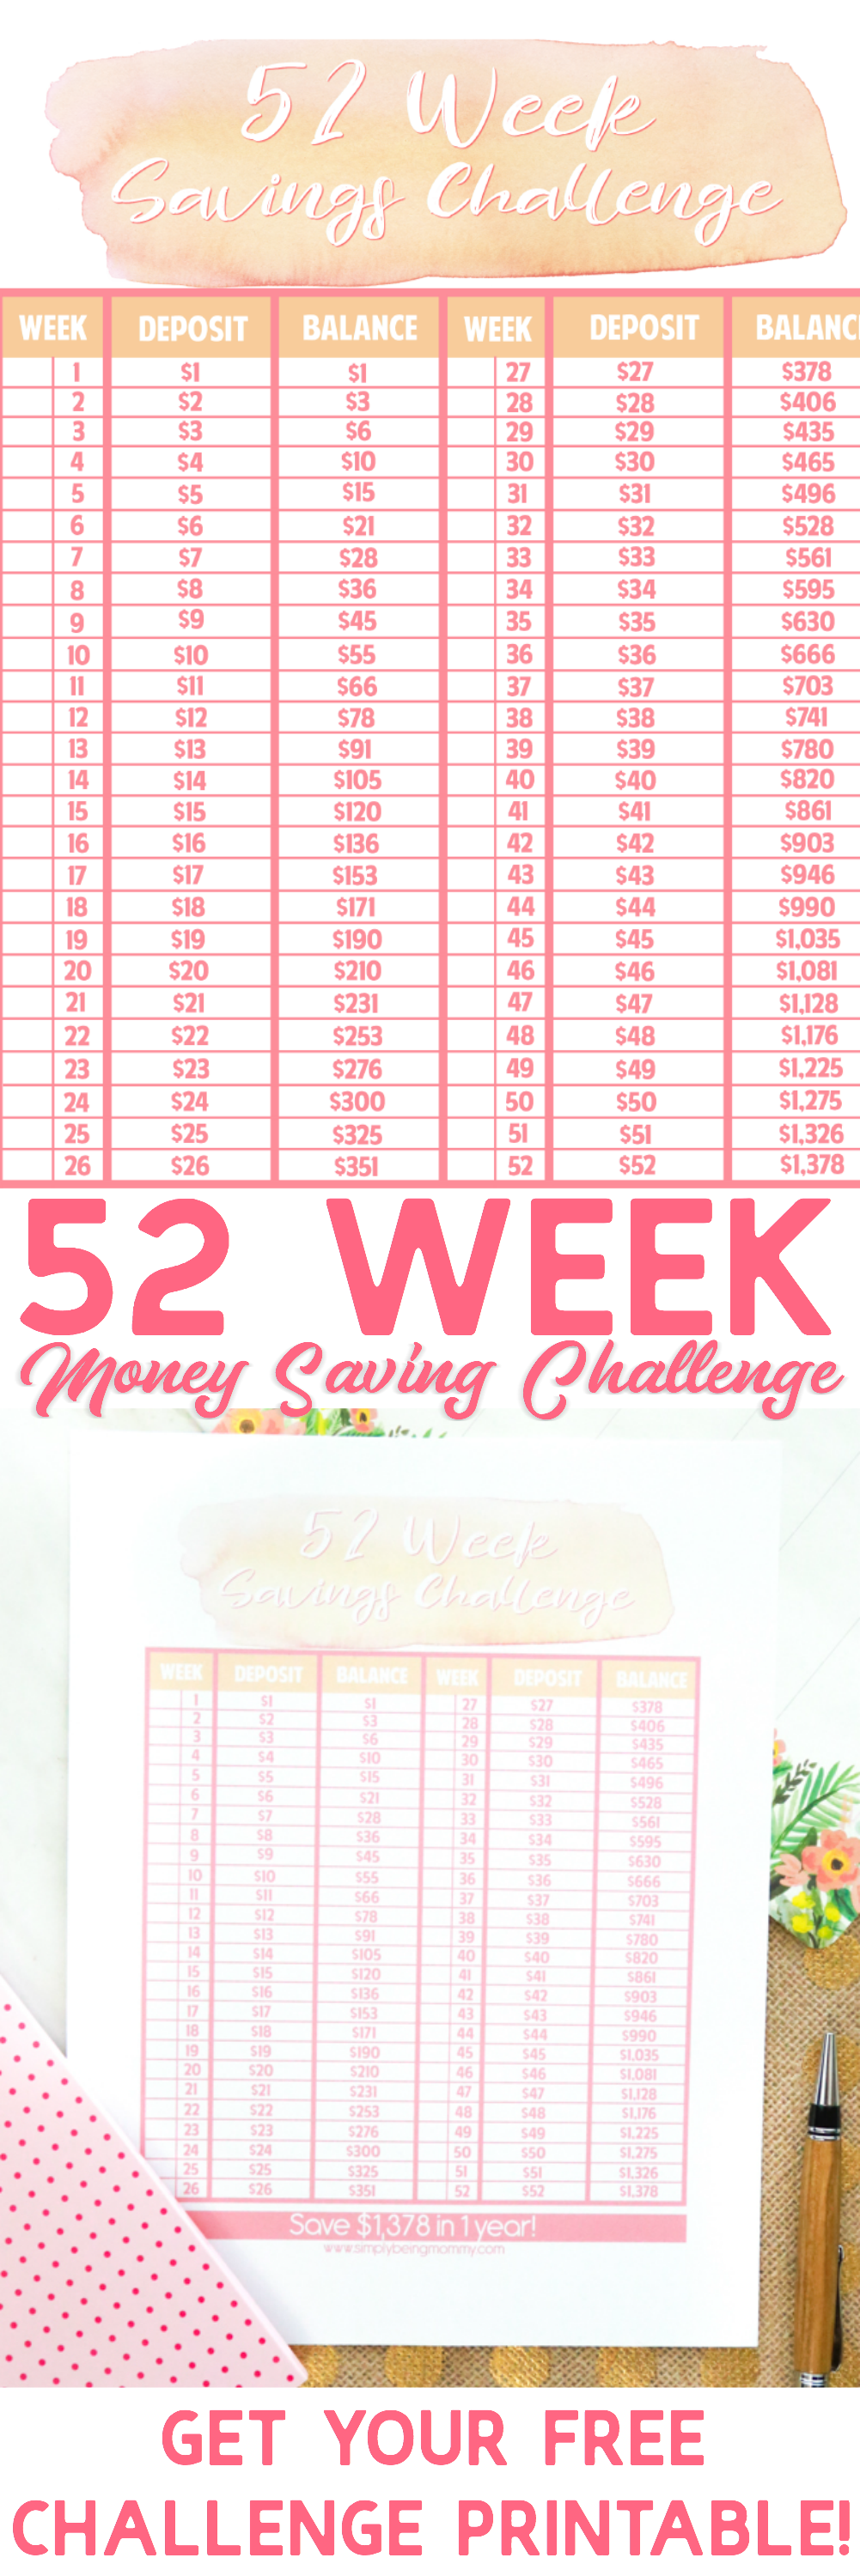 Is one of your goals for the new year to save money? Get your FREE 52 Week Money Saving Challenge Printable now!